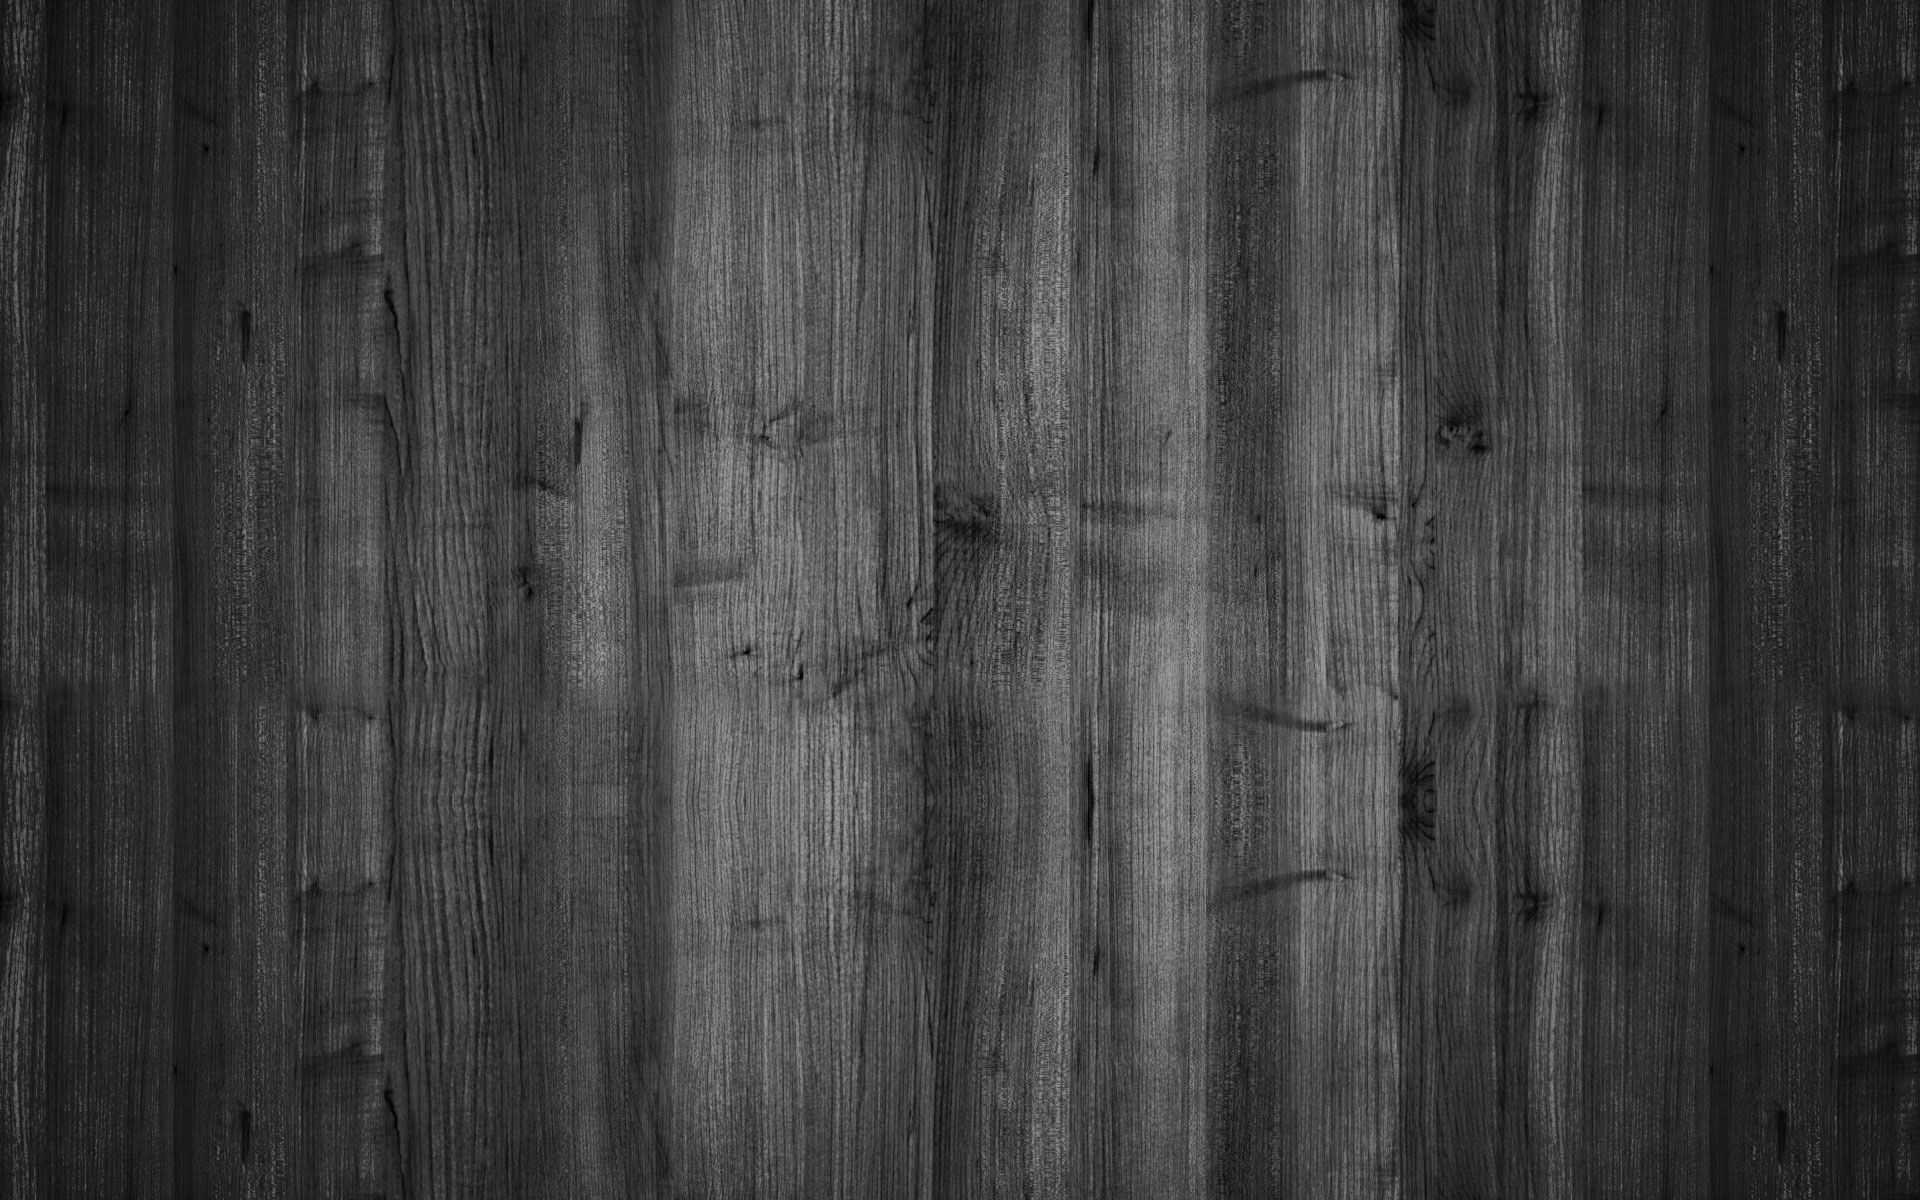 Wood Grain Hd Wallpaper Images For White Wall Covering Small ...